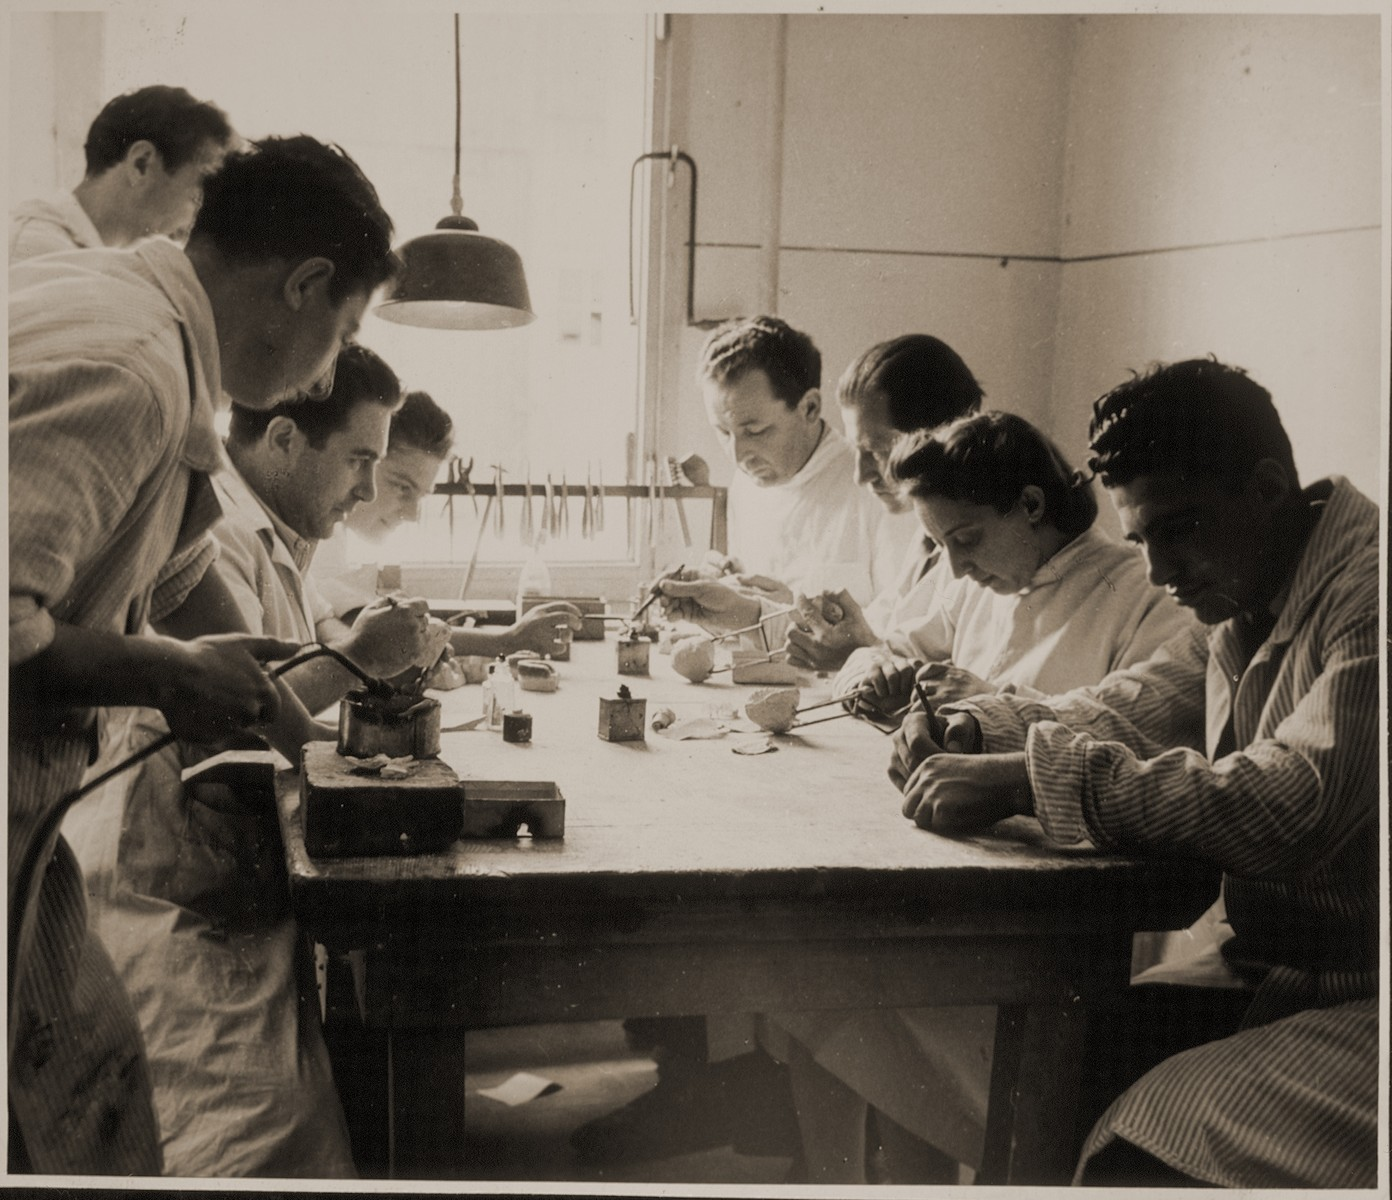 """Jewish DPs prepare dental molds in a dentistry vocational training class in Sankt Marien.   Family album bearing the title """"Motoring/Jewish DP camp/St. Marein [Sankt Marien]/School,"""" that belonged to Moritz Friedler.  In 1946 and 1947, he served as a social worker with the Jewish Committee for Relief Abroad at the Sankt Marien DP camp in the British zone of Austria. Friedler subsequently became the JDC's Area Director in Linz, Austria.  The photo album documents Jewish DP life in both places."""